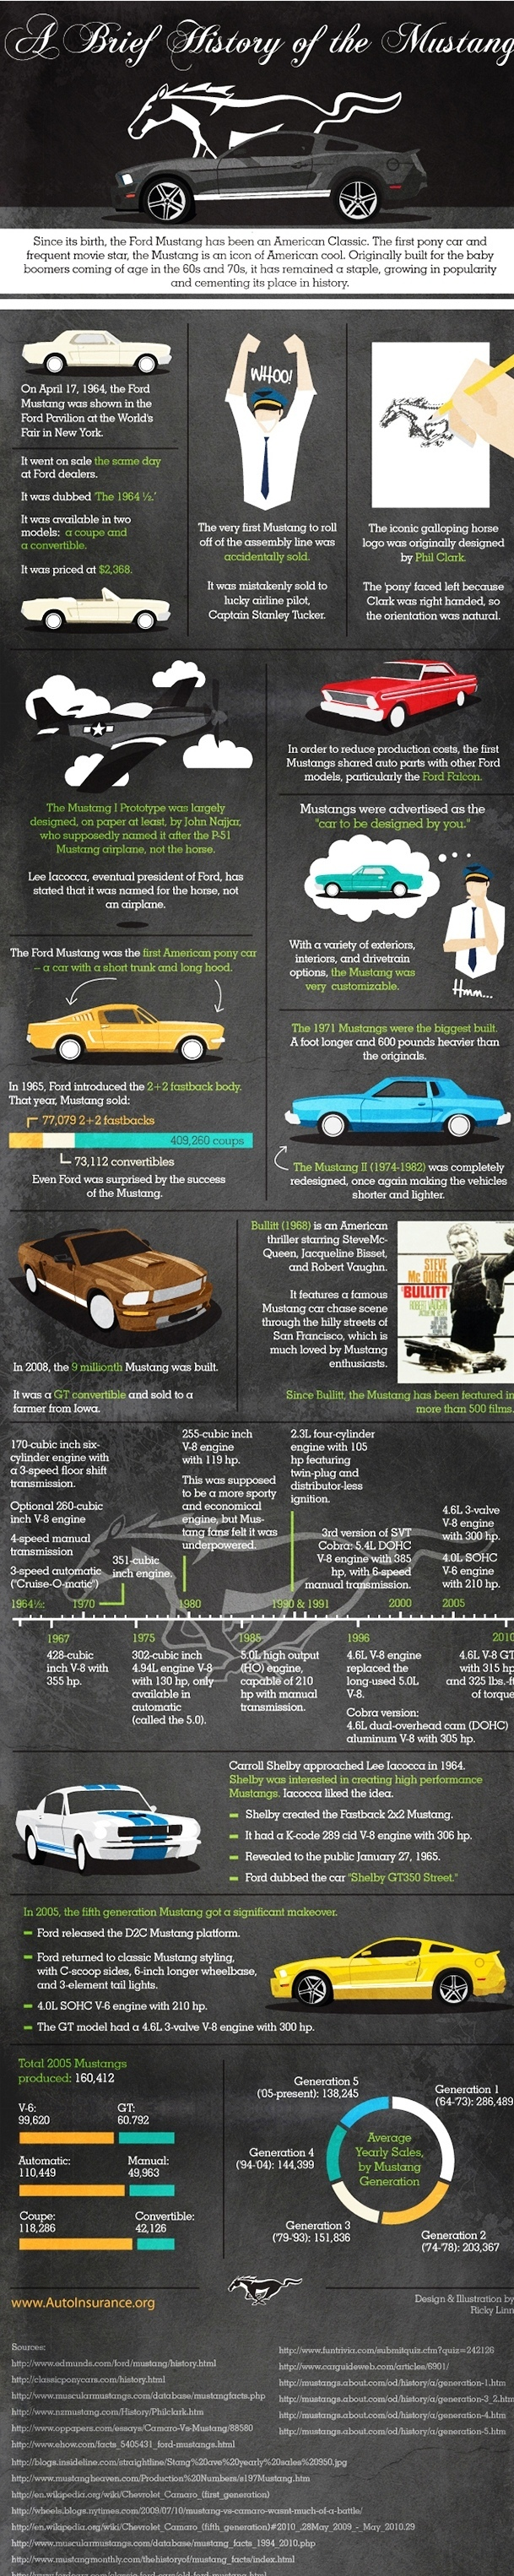 The Ford Mustang Infographic